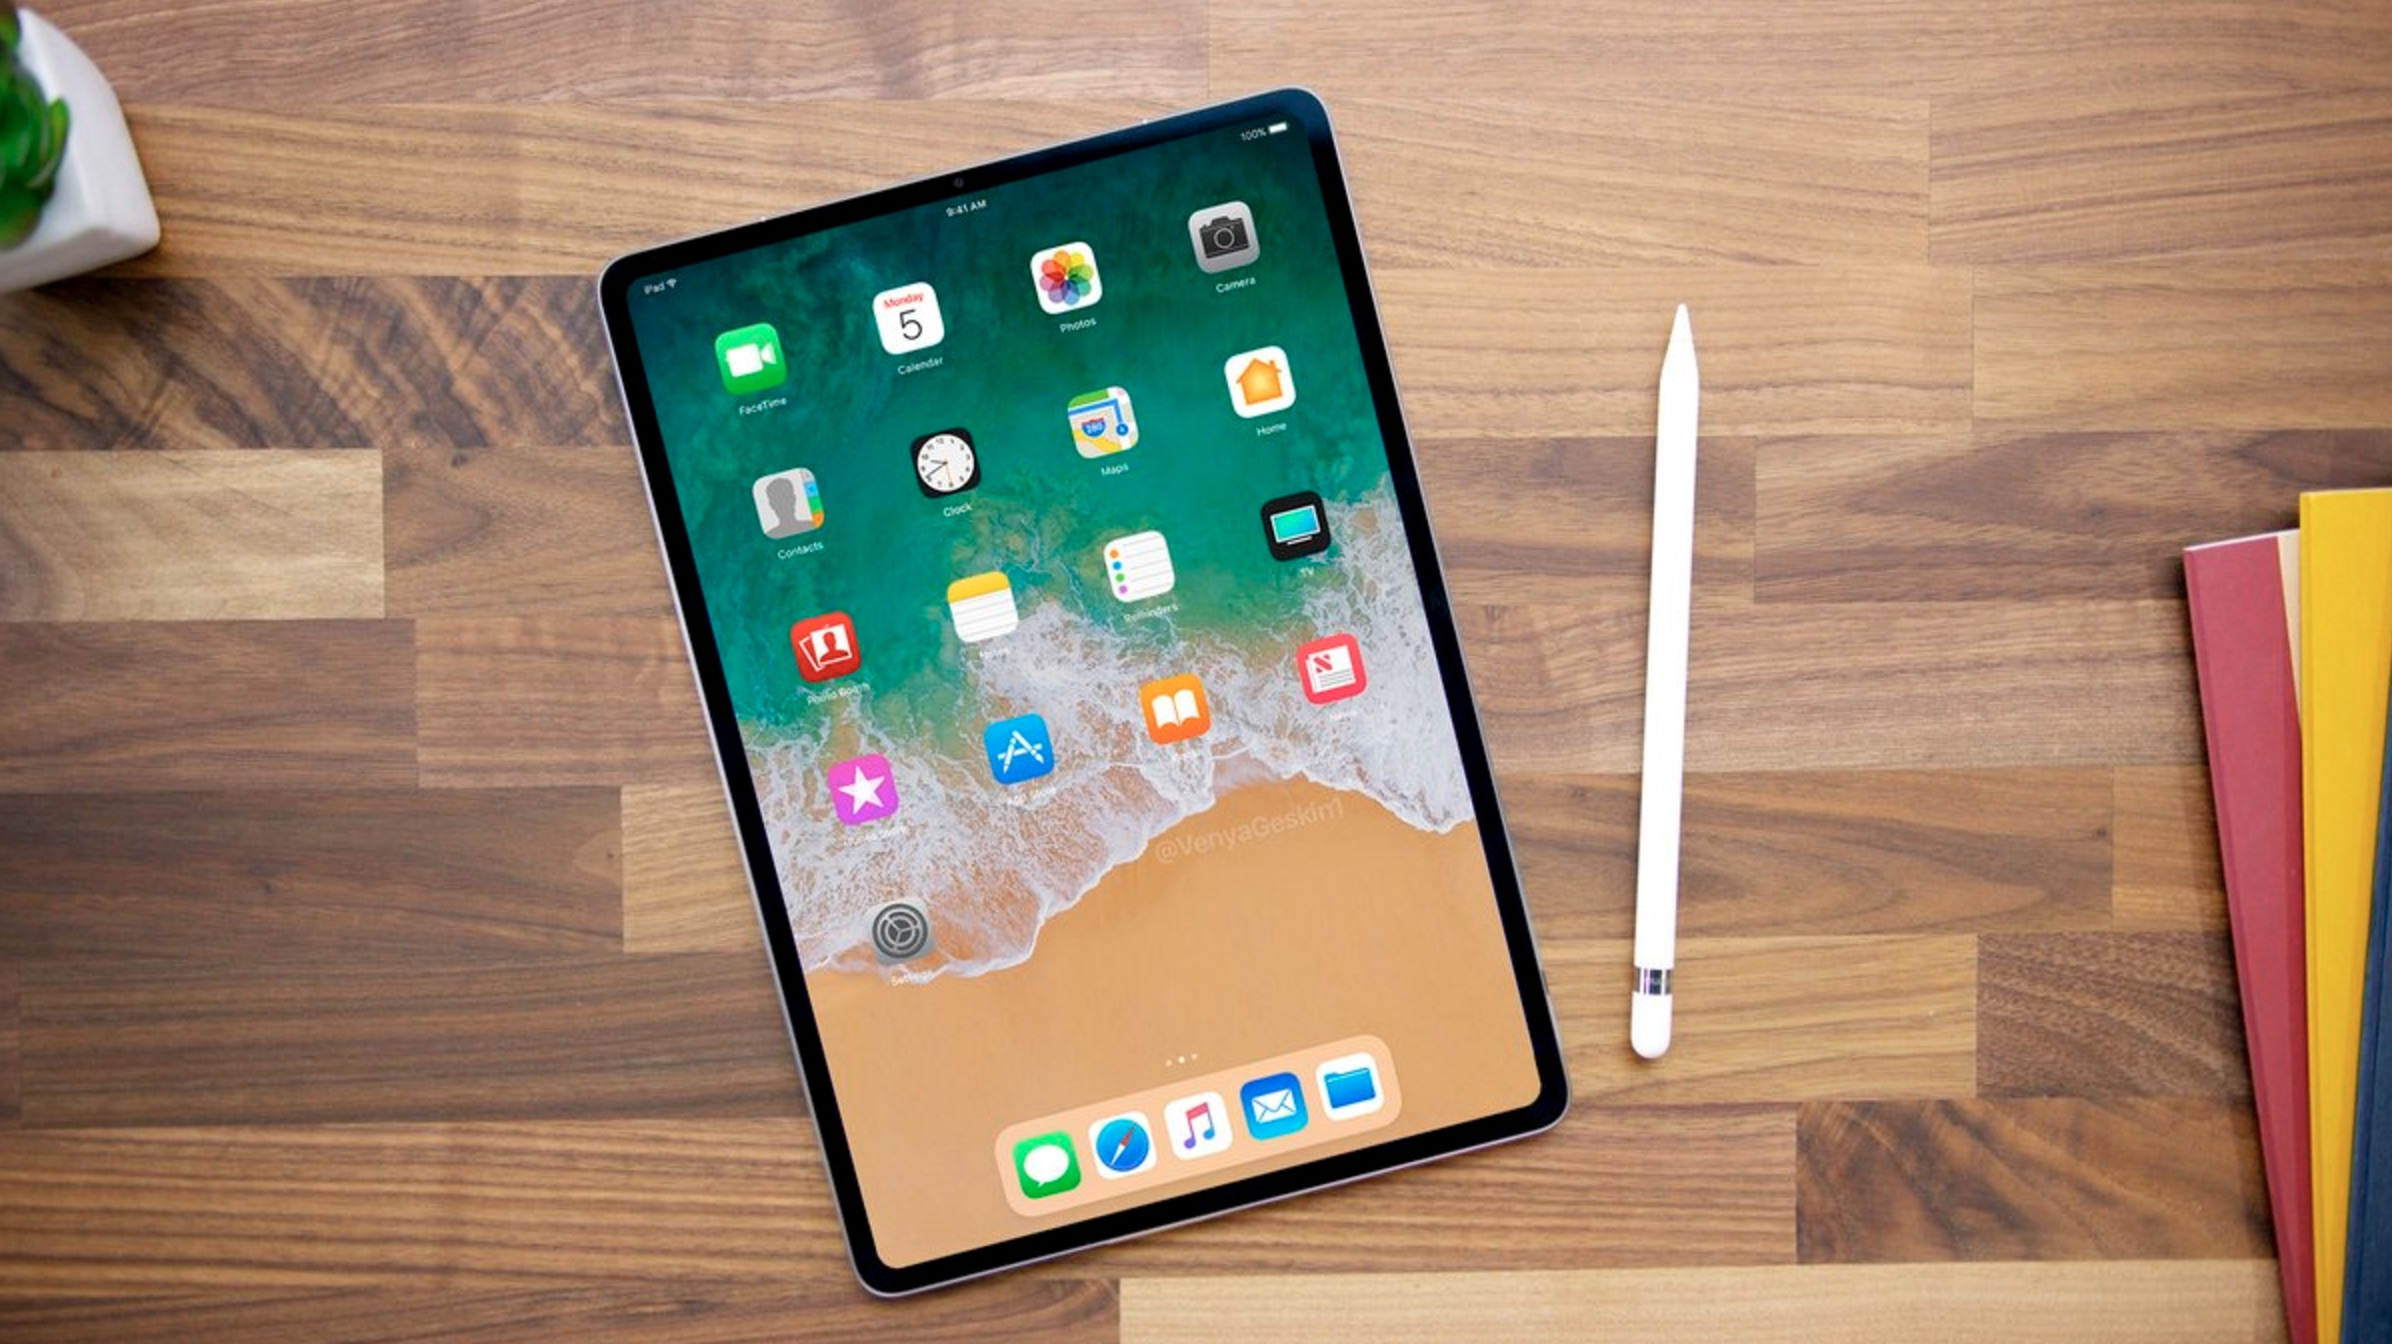 Suspect report says Apple's A11X Bionic chip will arrive with new iPad Pro by Q2 2018